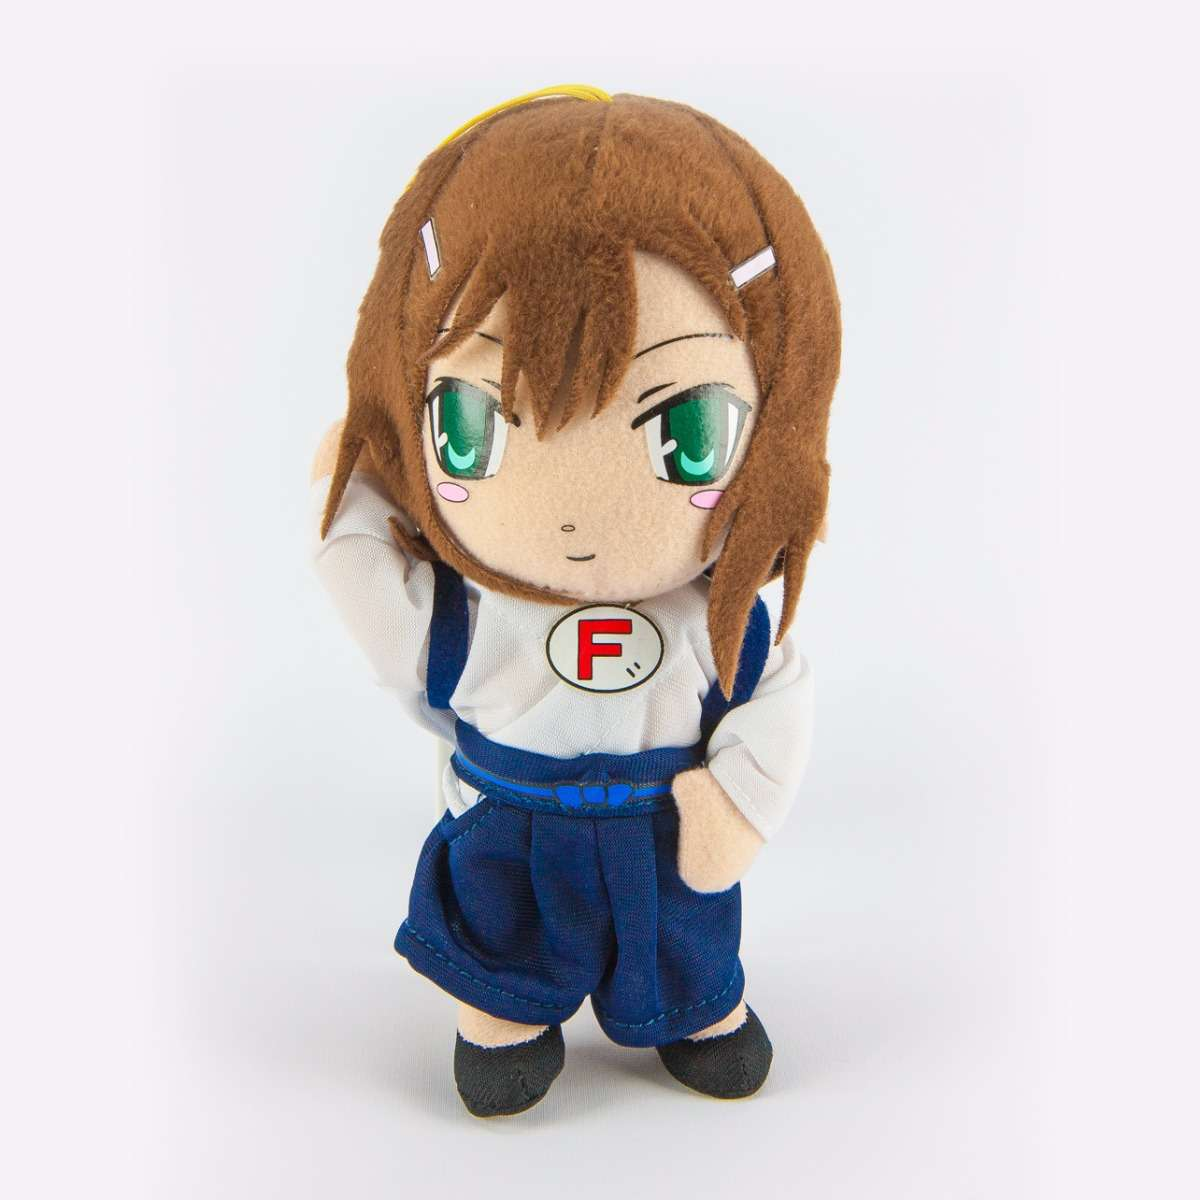 Hideyoshi Plush Toys & Games